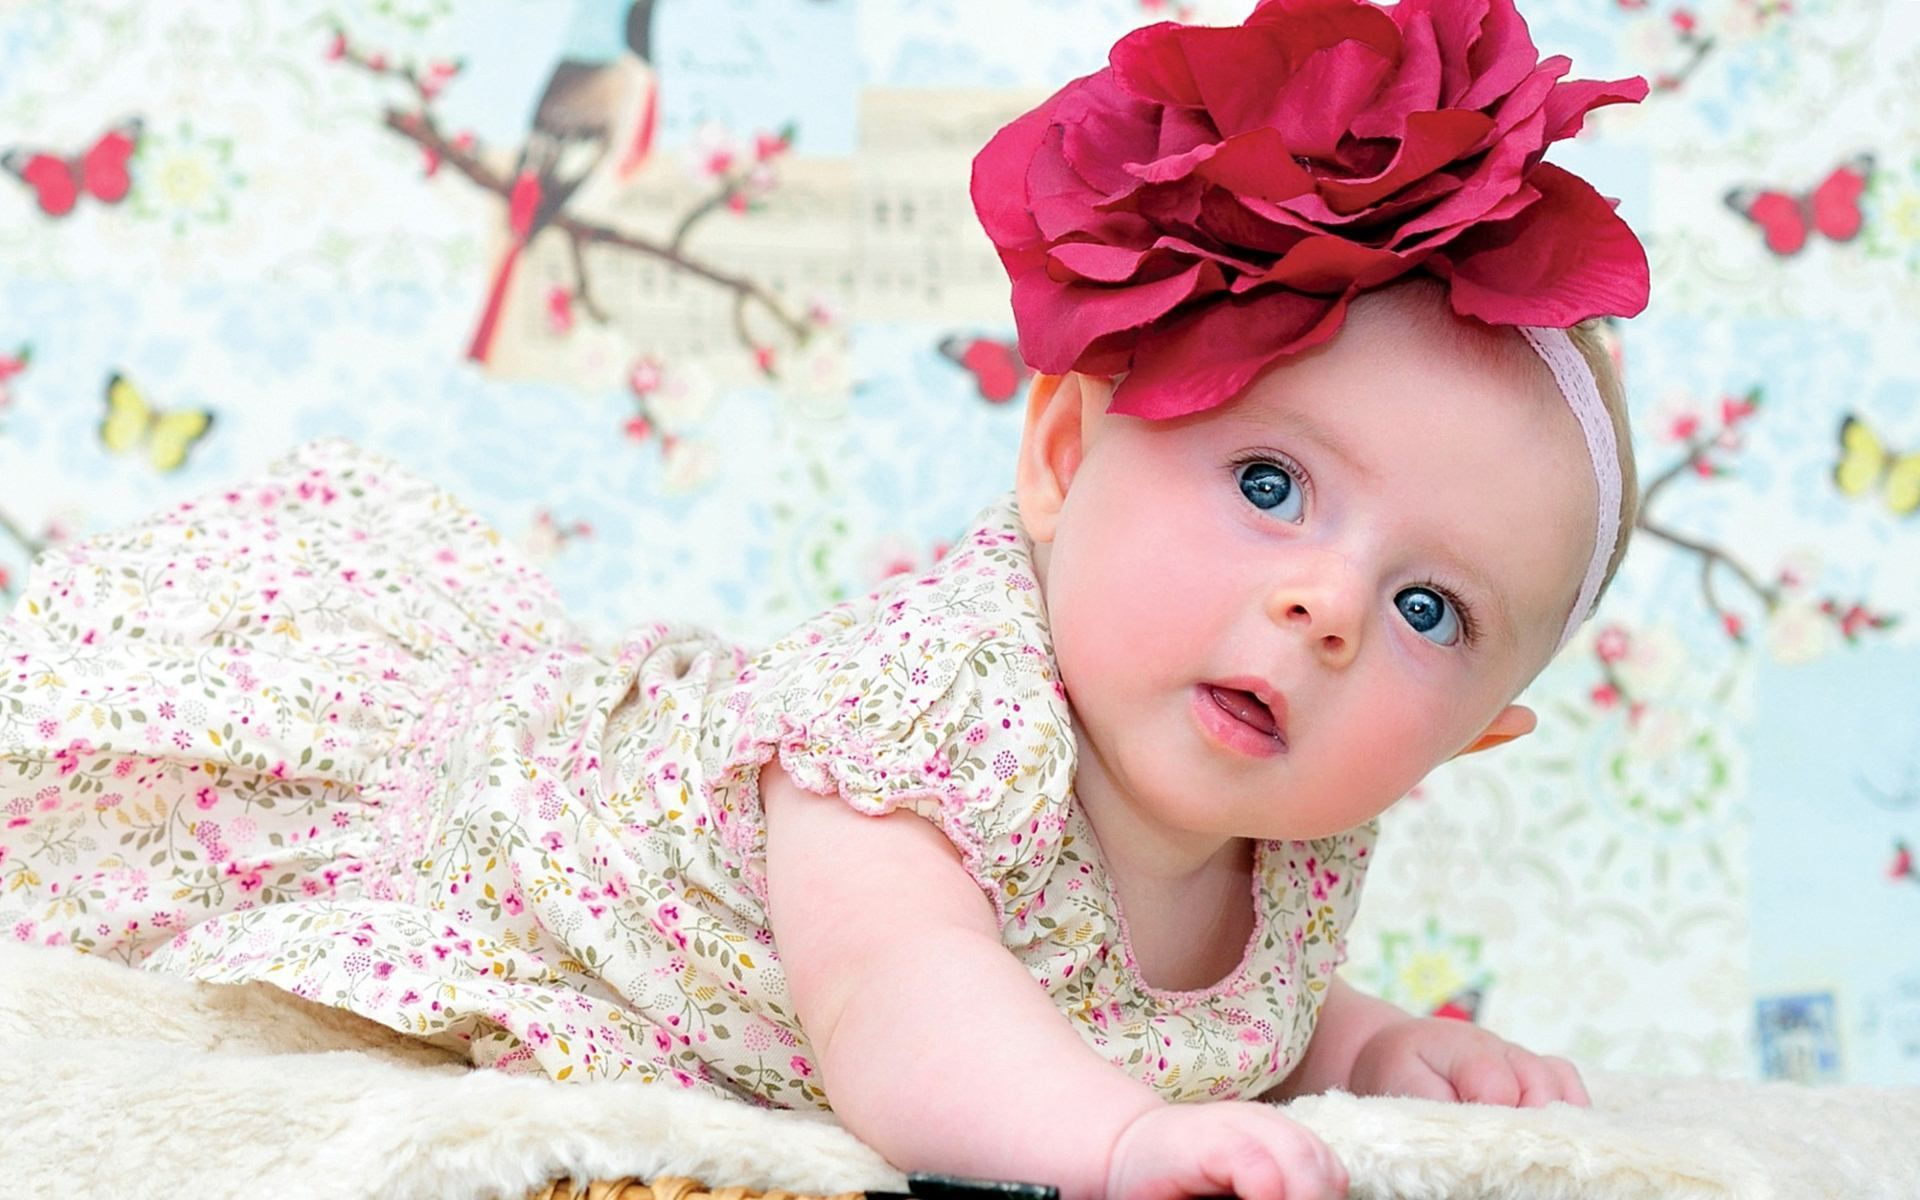 Wallpaper download baby - Cute Baby Girl Images And Wallpaper Download Babys Aw